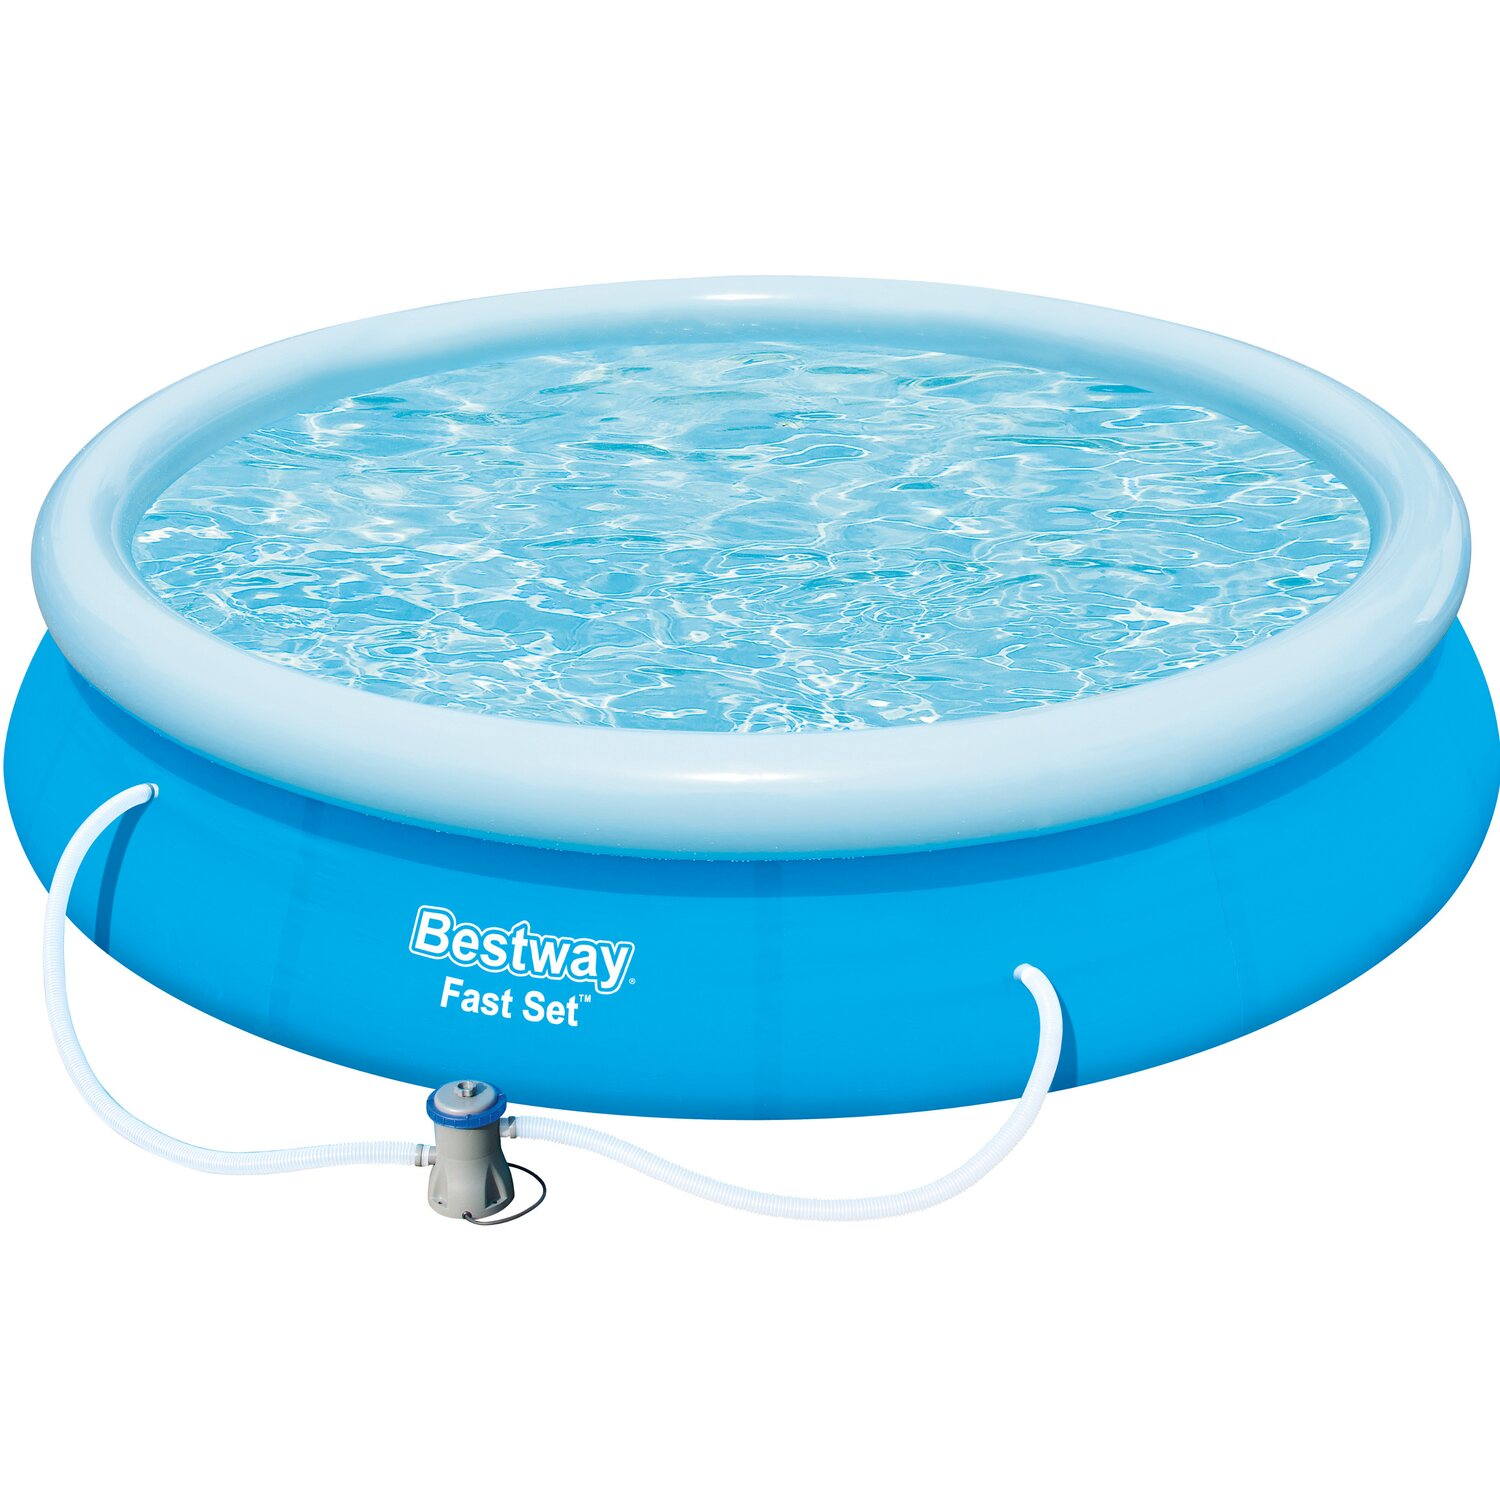 Bestway fast set pool 366 cm x 76 cm kaufen bei obi for Obi filterpumpe